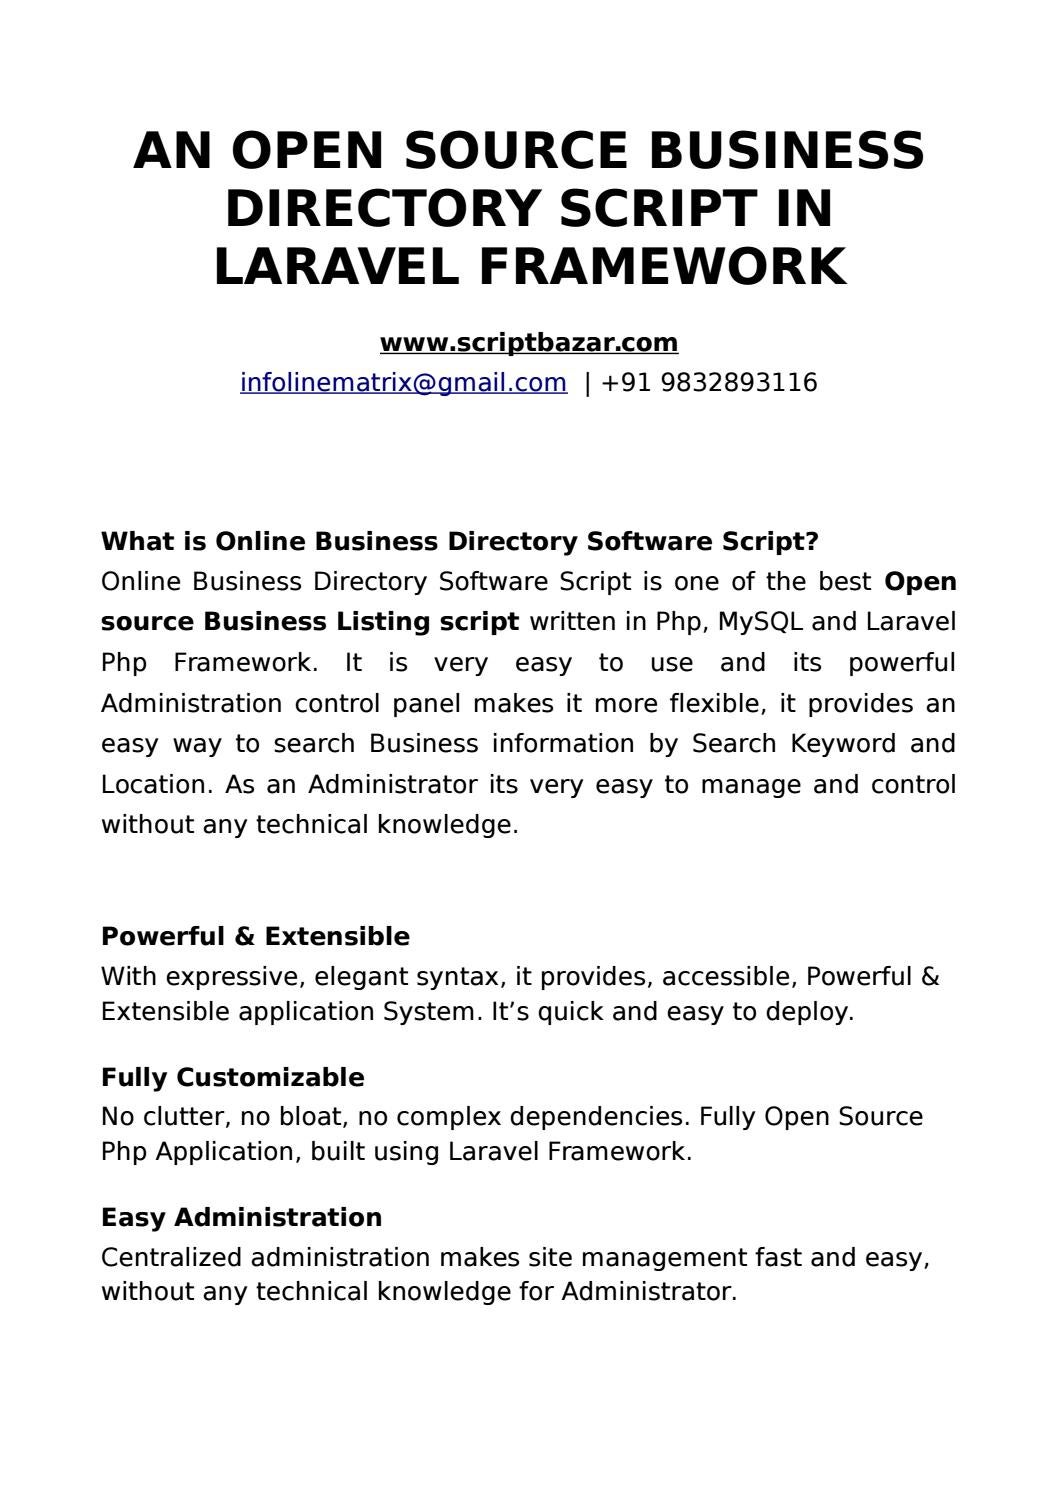 Business Directory Script in Laravel Framework by mail1